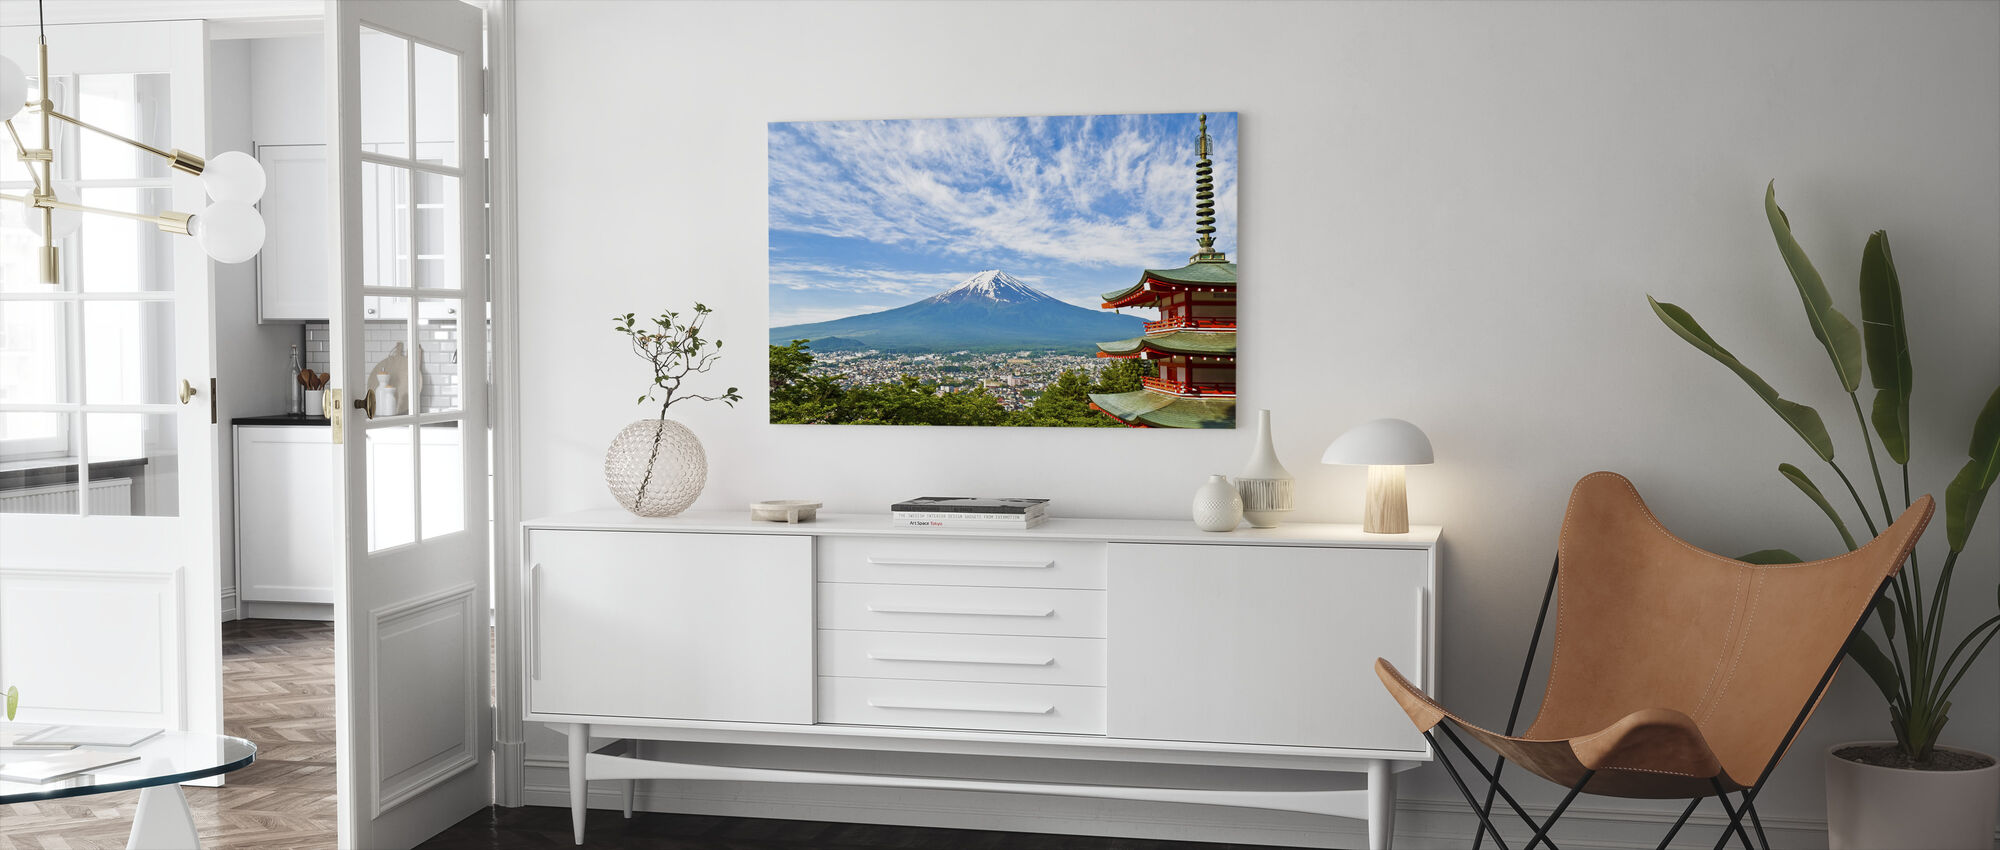 At the Foot of Mount Fuji - Canvas print - Living Room